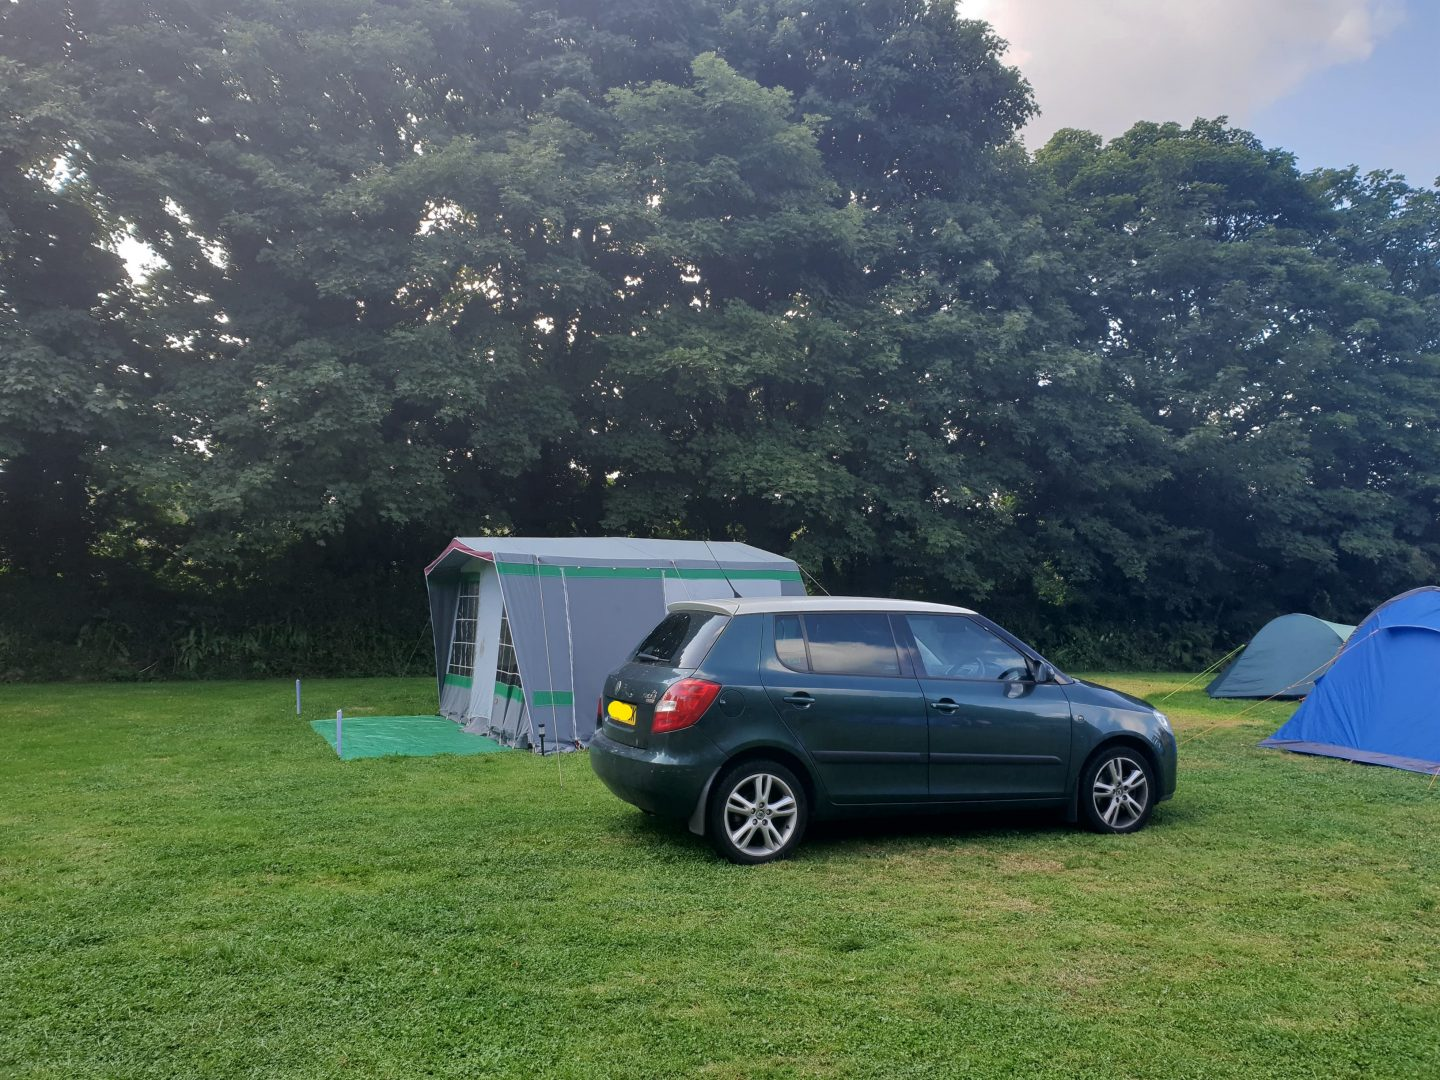 Camping with a Skoda Fabia